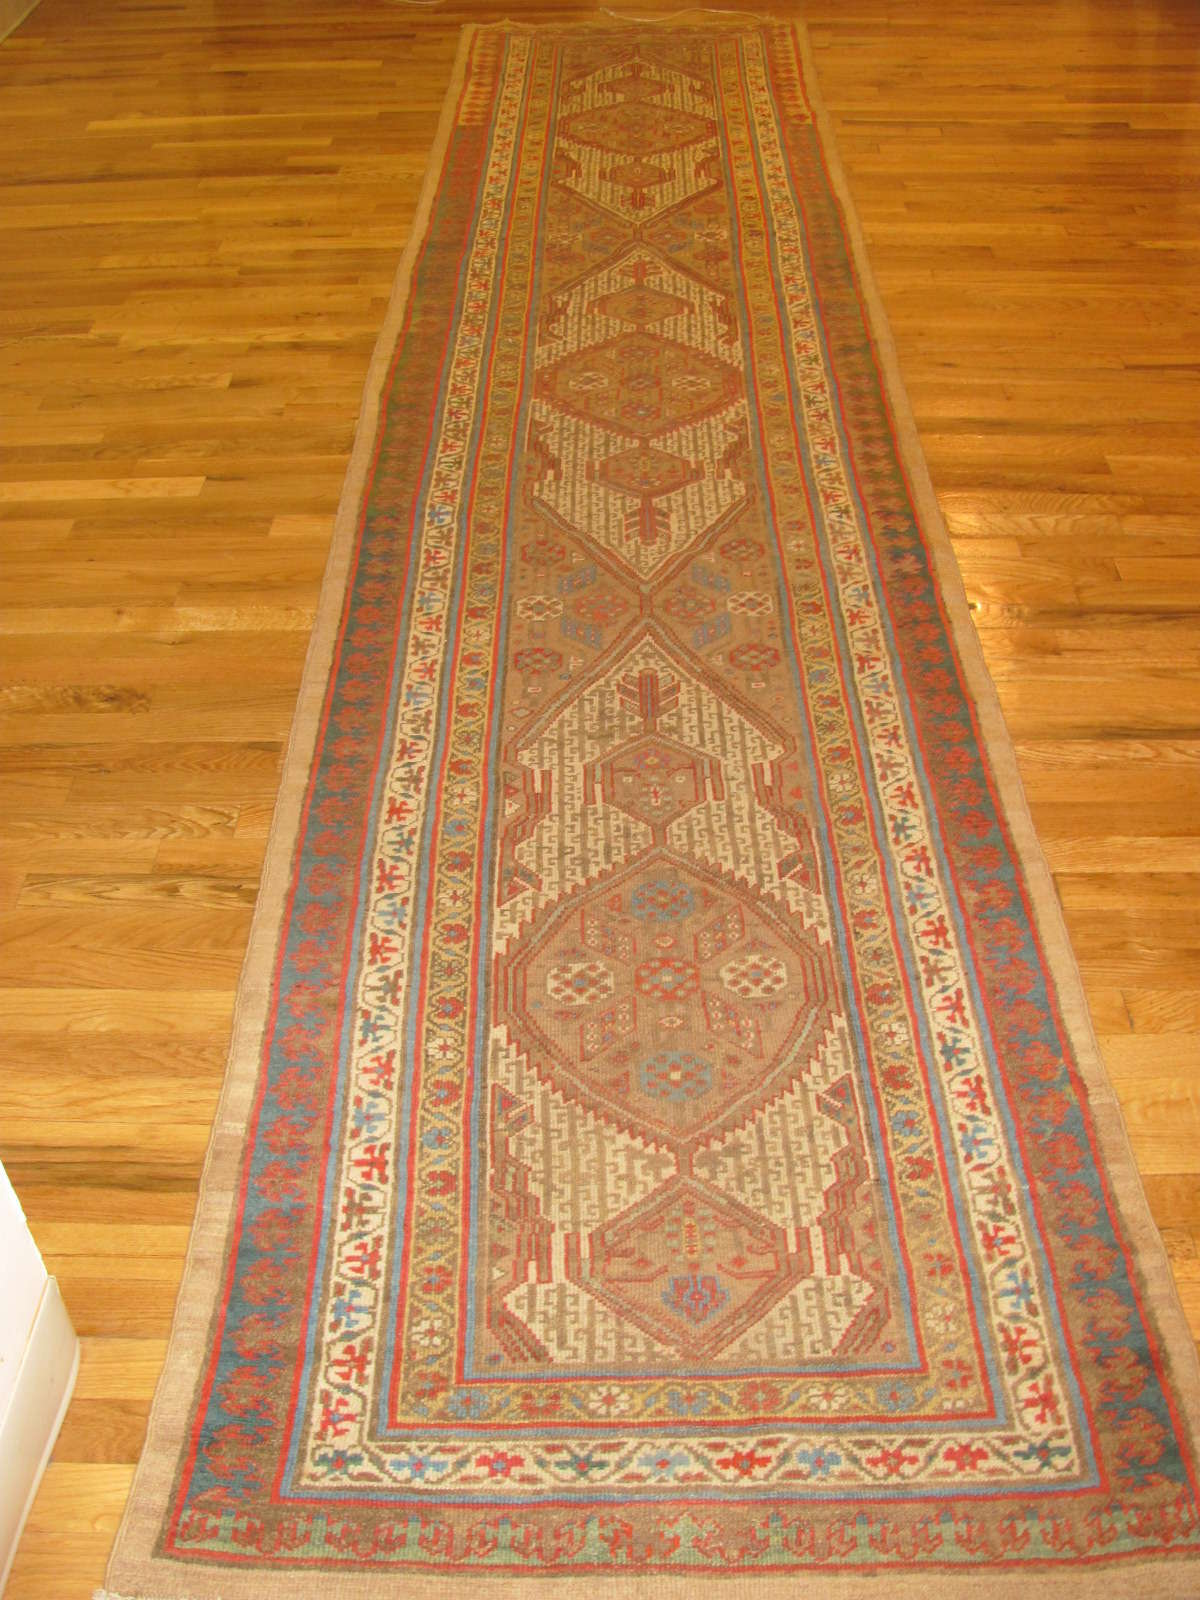 Serab Rug | Persia | Antique |Hand Knotted | Circa 1910